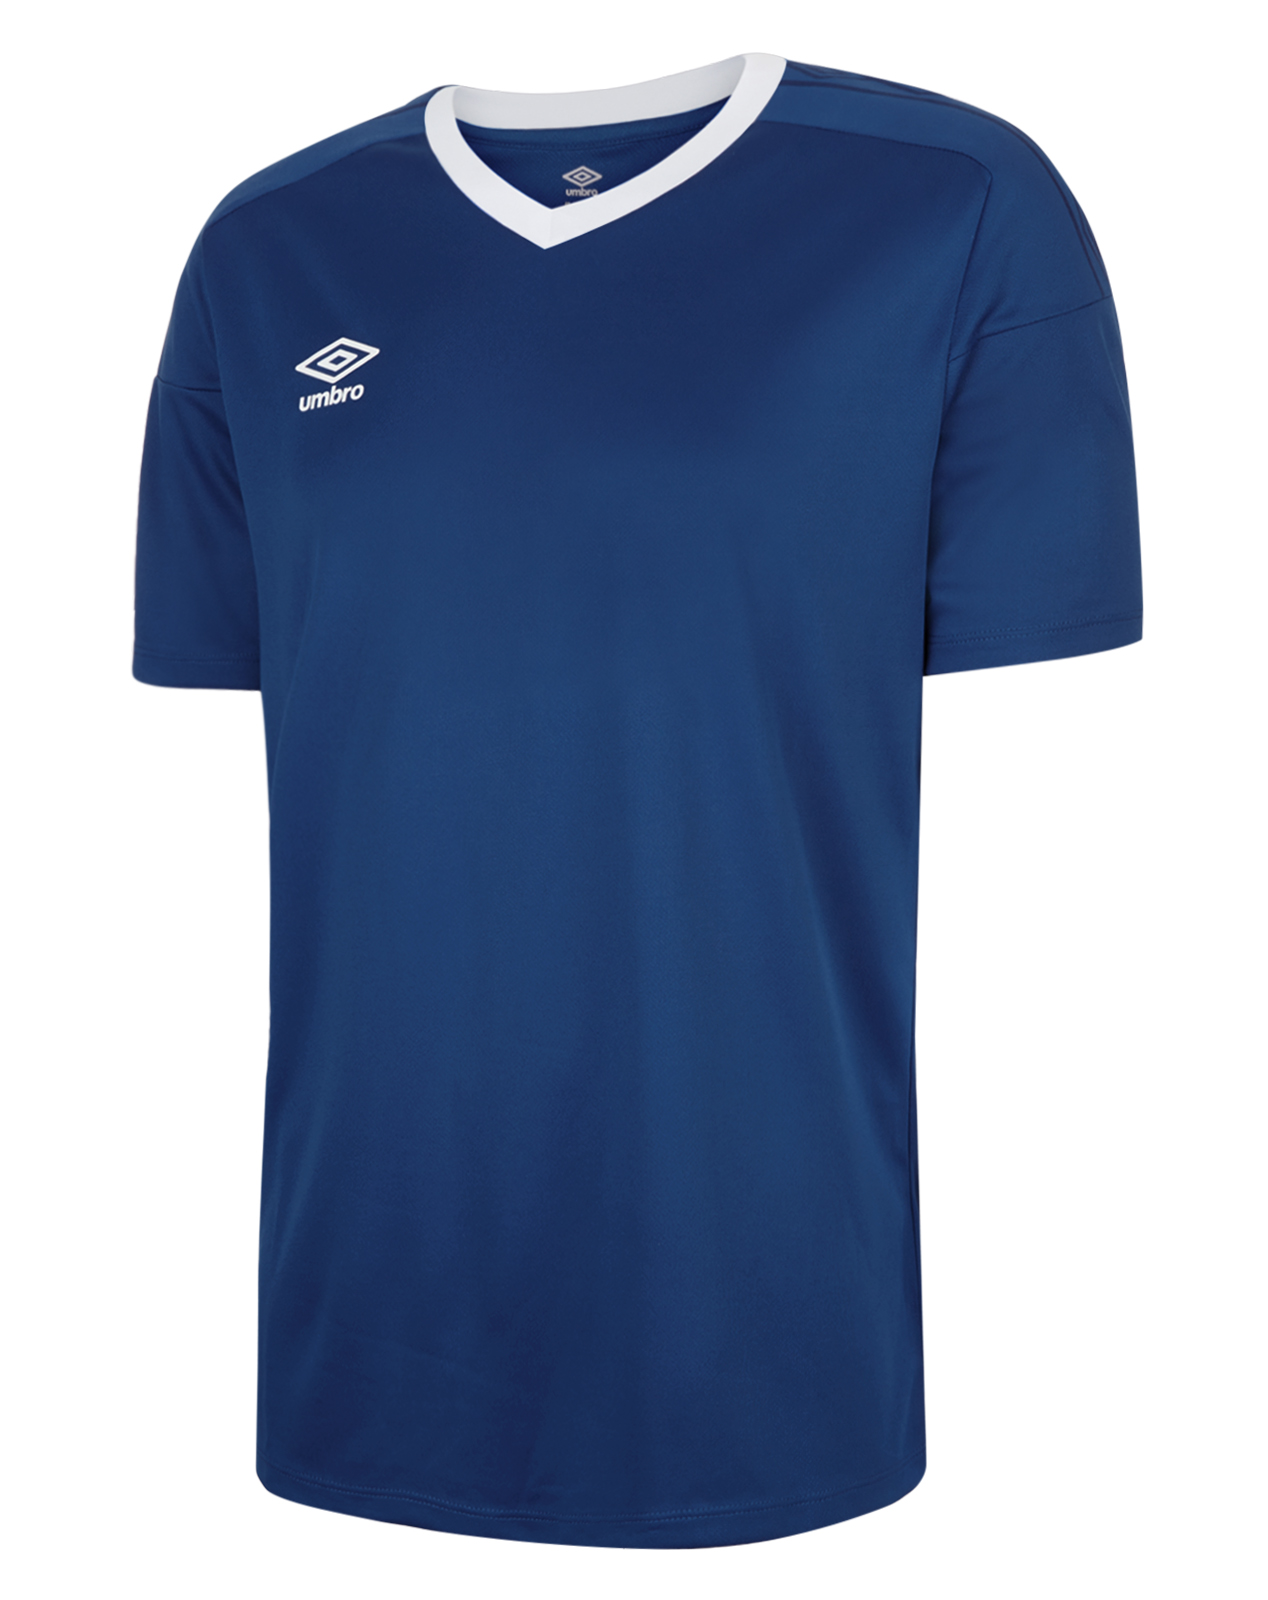 Umbro Legacy jersey in navy with white v-neck collar